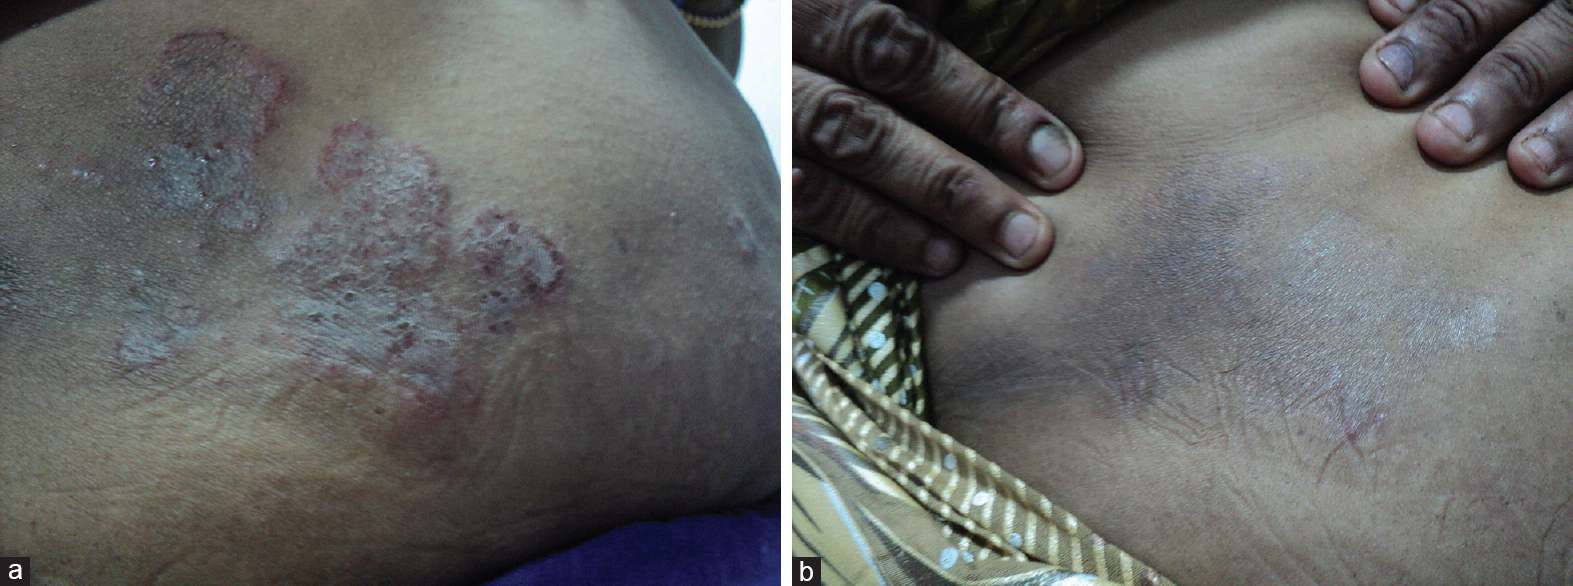 "Figure 1: (a) A case of tinea corporis (abdominal skin). (b) ""Complete clinical cure"" after 2 weeks of topical antifungal therapy"